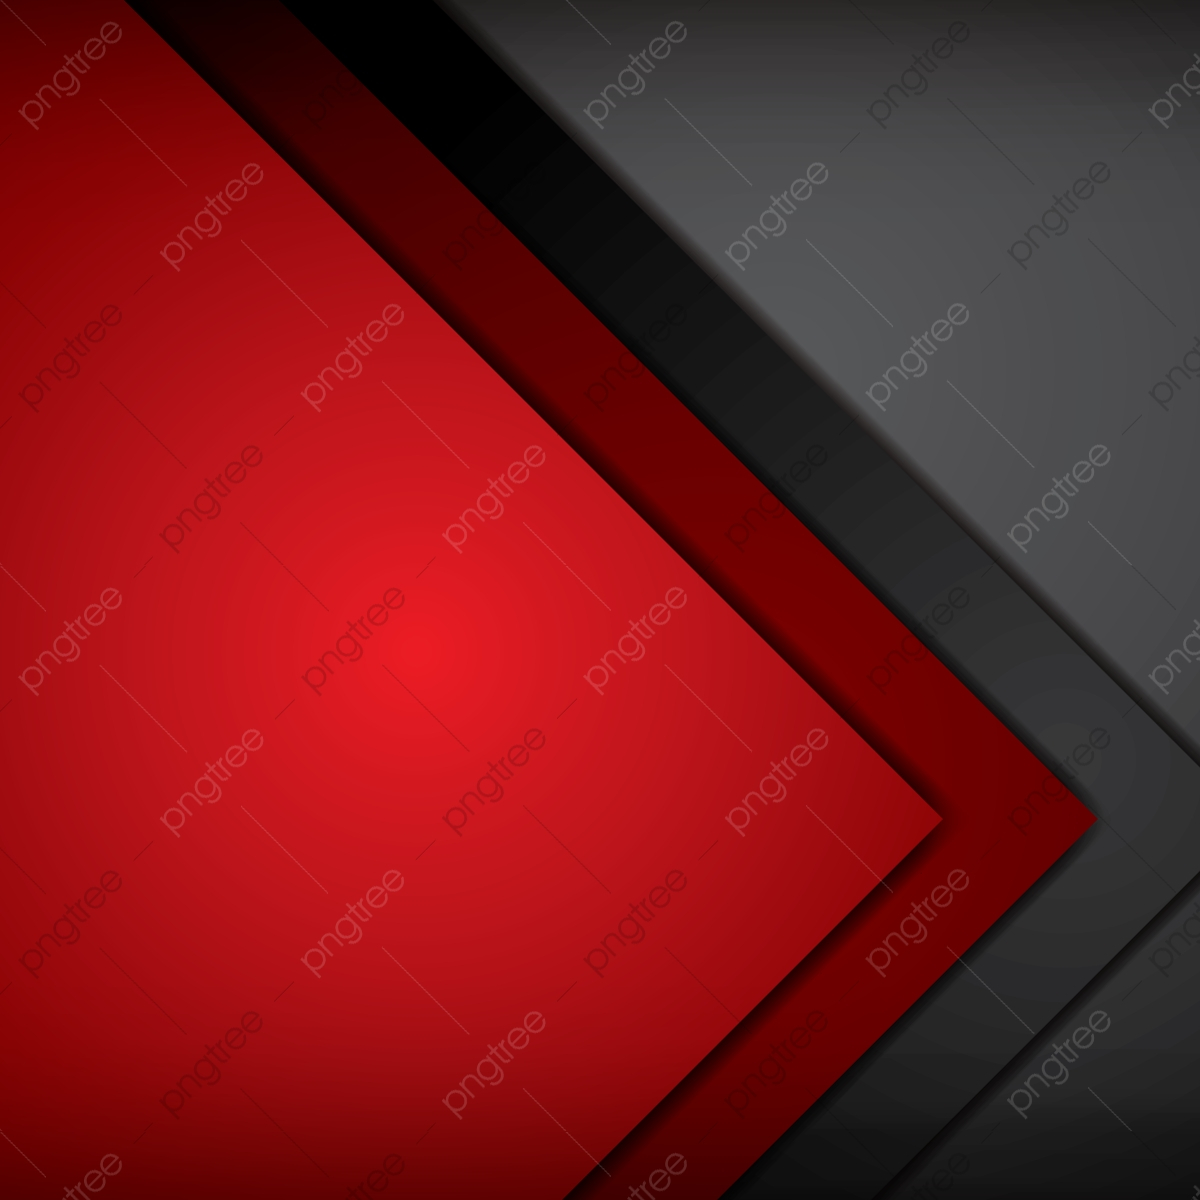 a black red background png